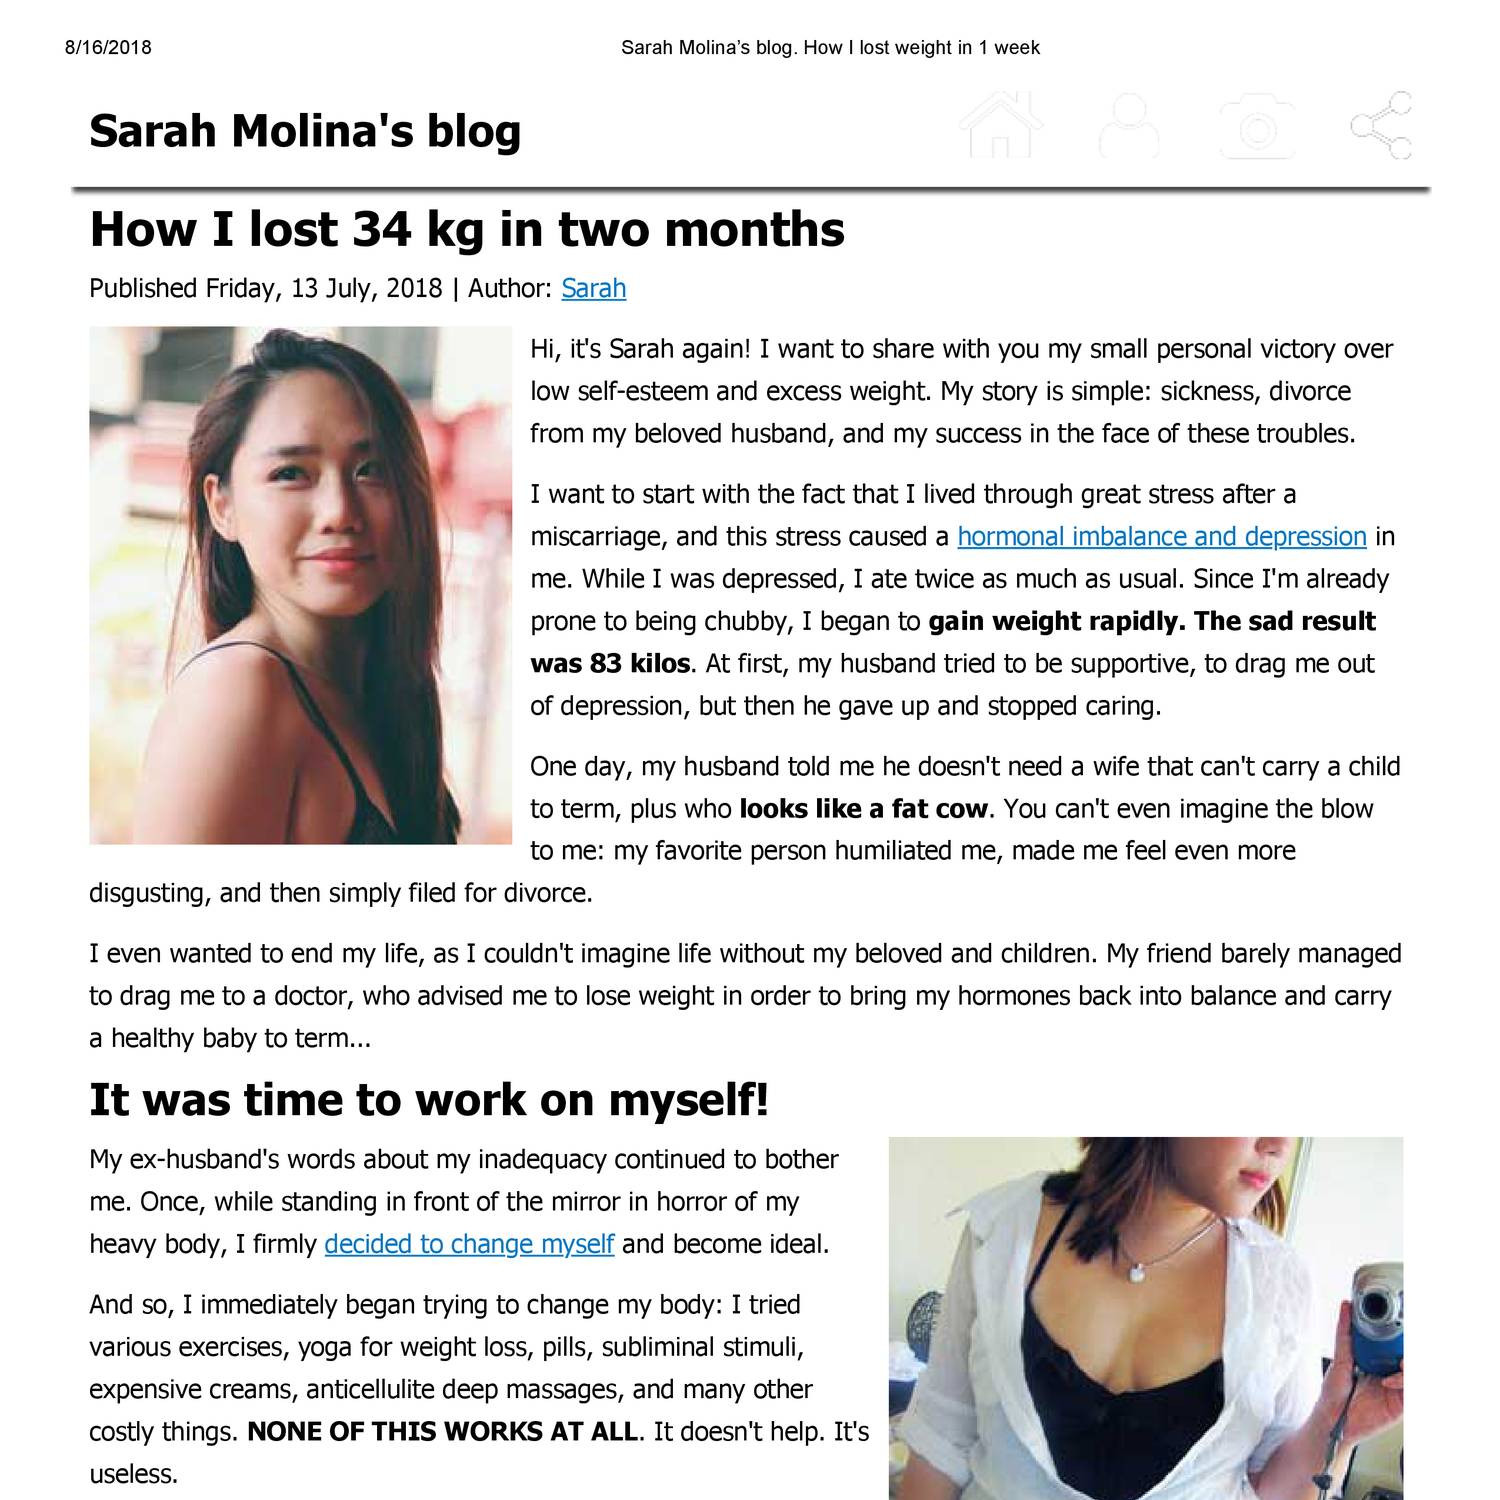 SCAM] Sarah Molina's blog  How I lost weight in 1 week pdf